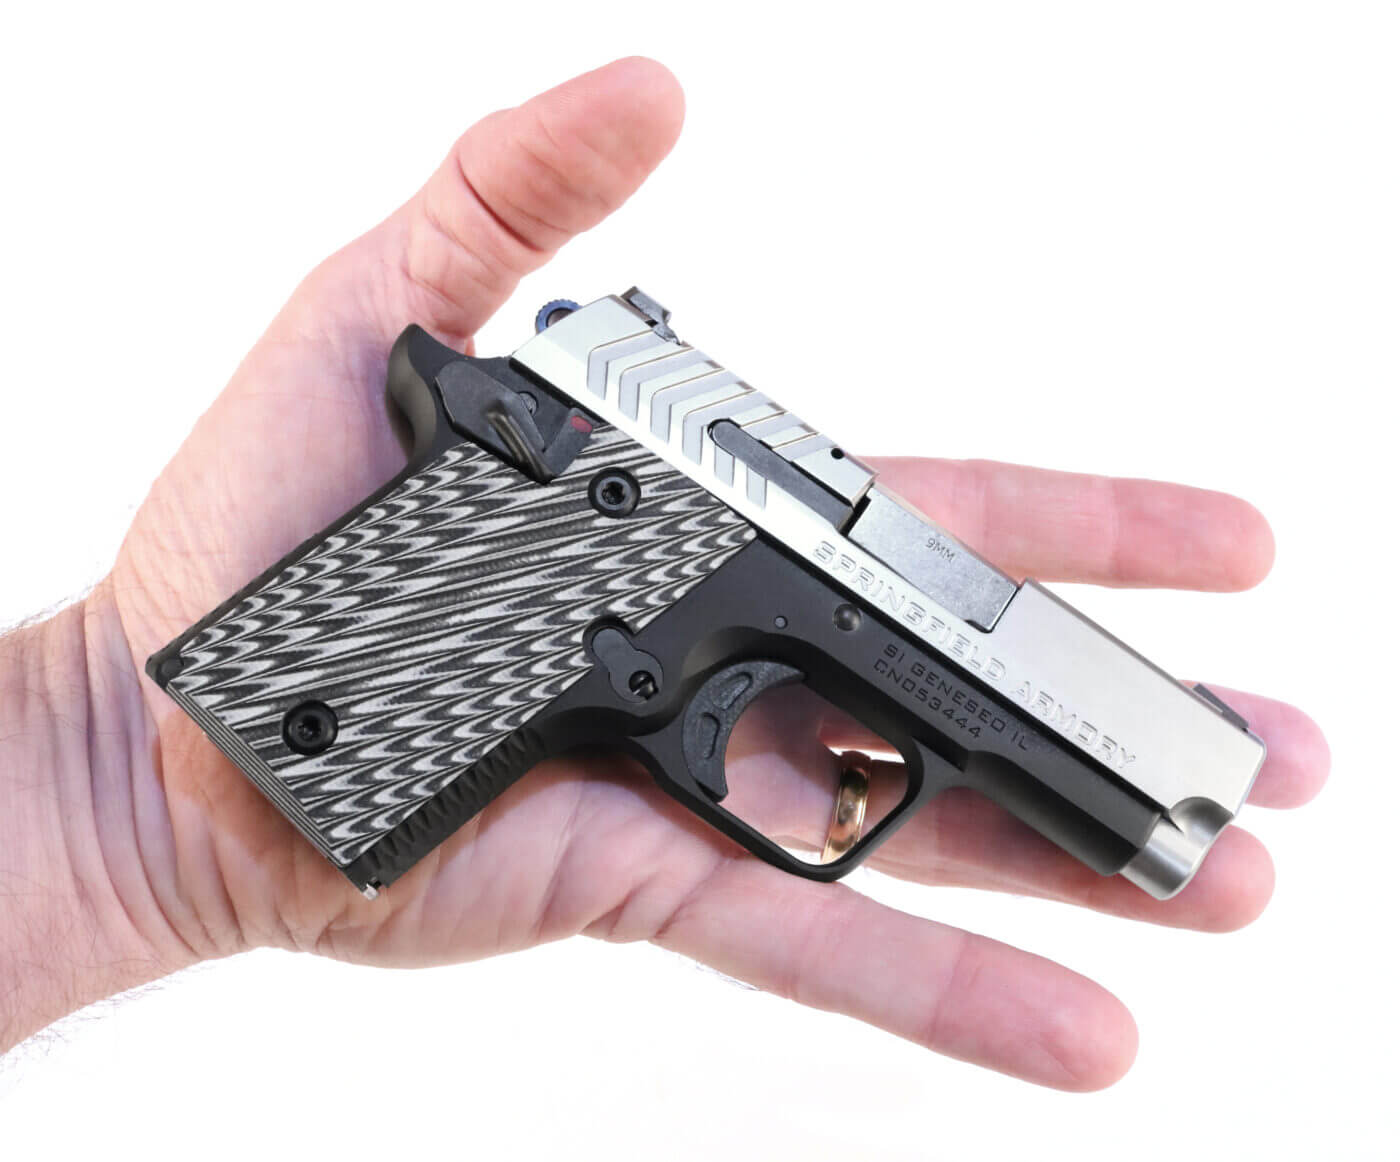 Springfield 911 fits into the palm of your hand